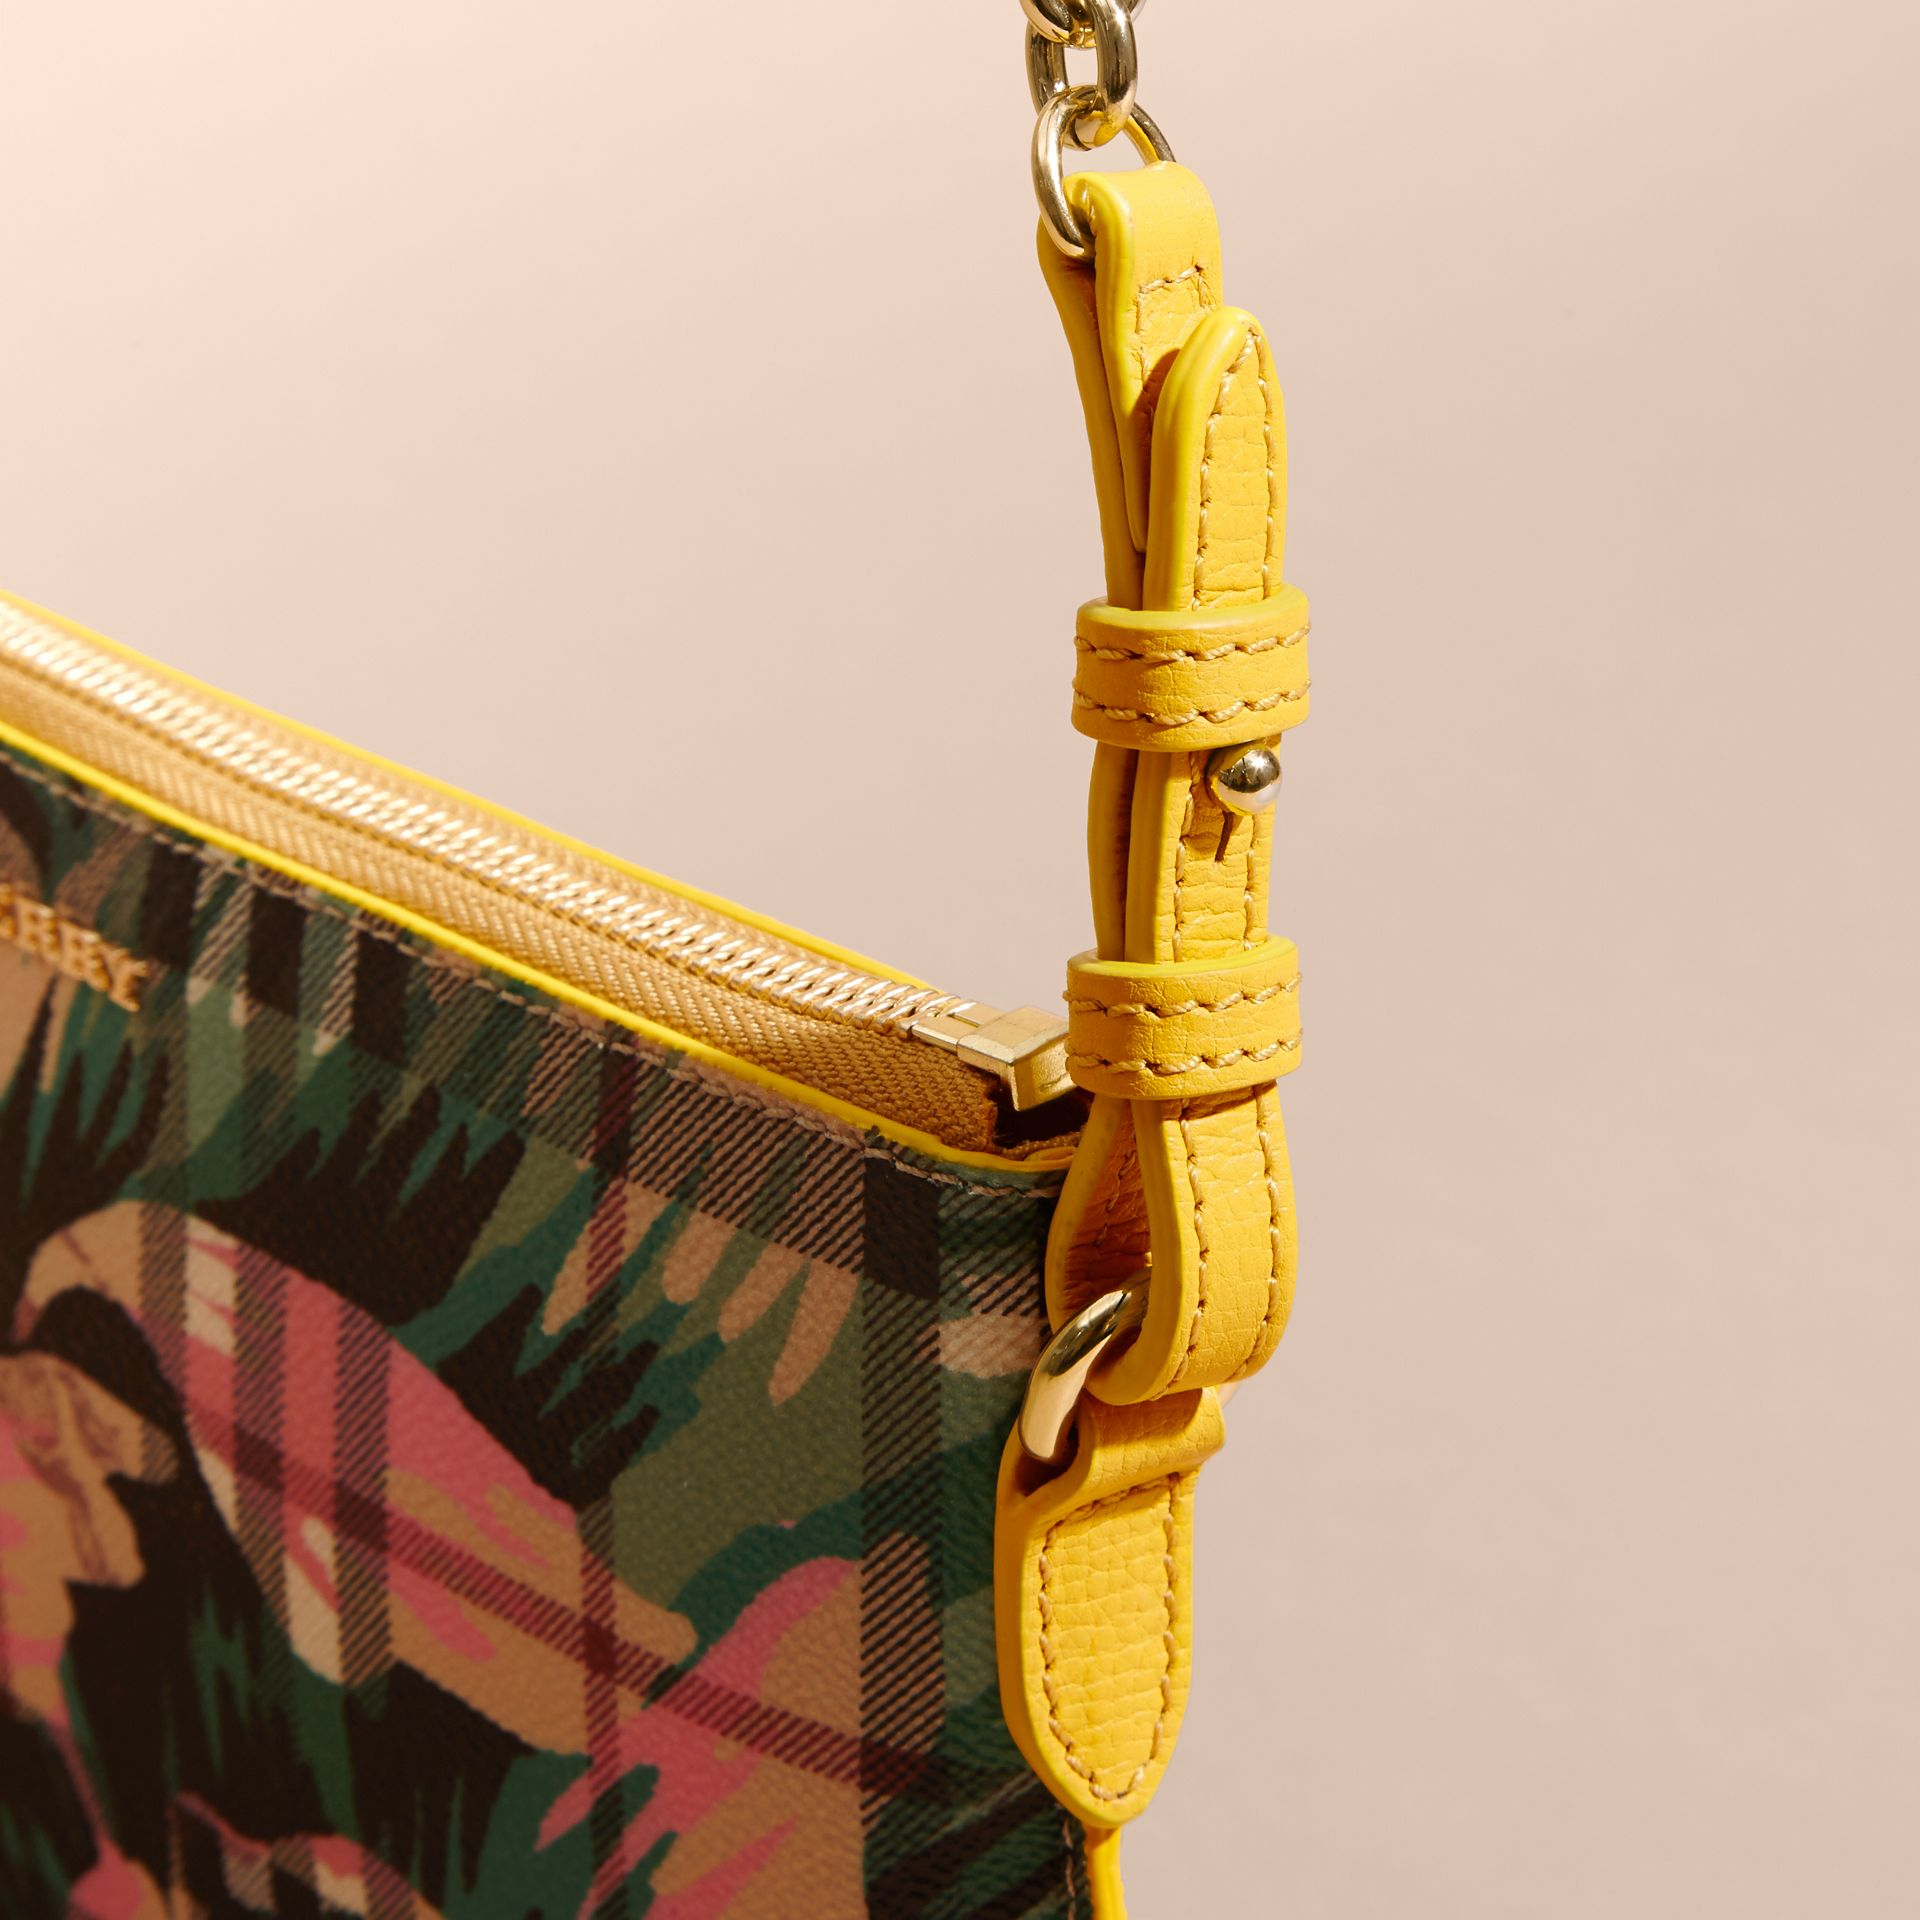 Peony Rose Print Haymarket Check and Leather Clutch Bag in Larch Yellow/emerald Green - gallery image 2